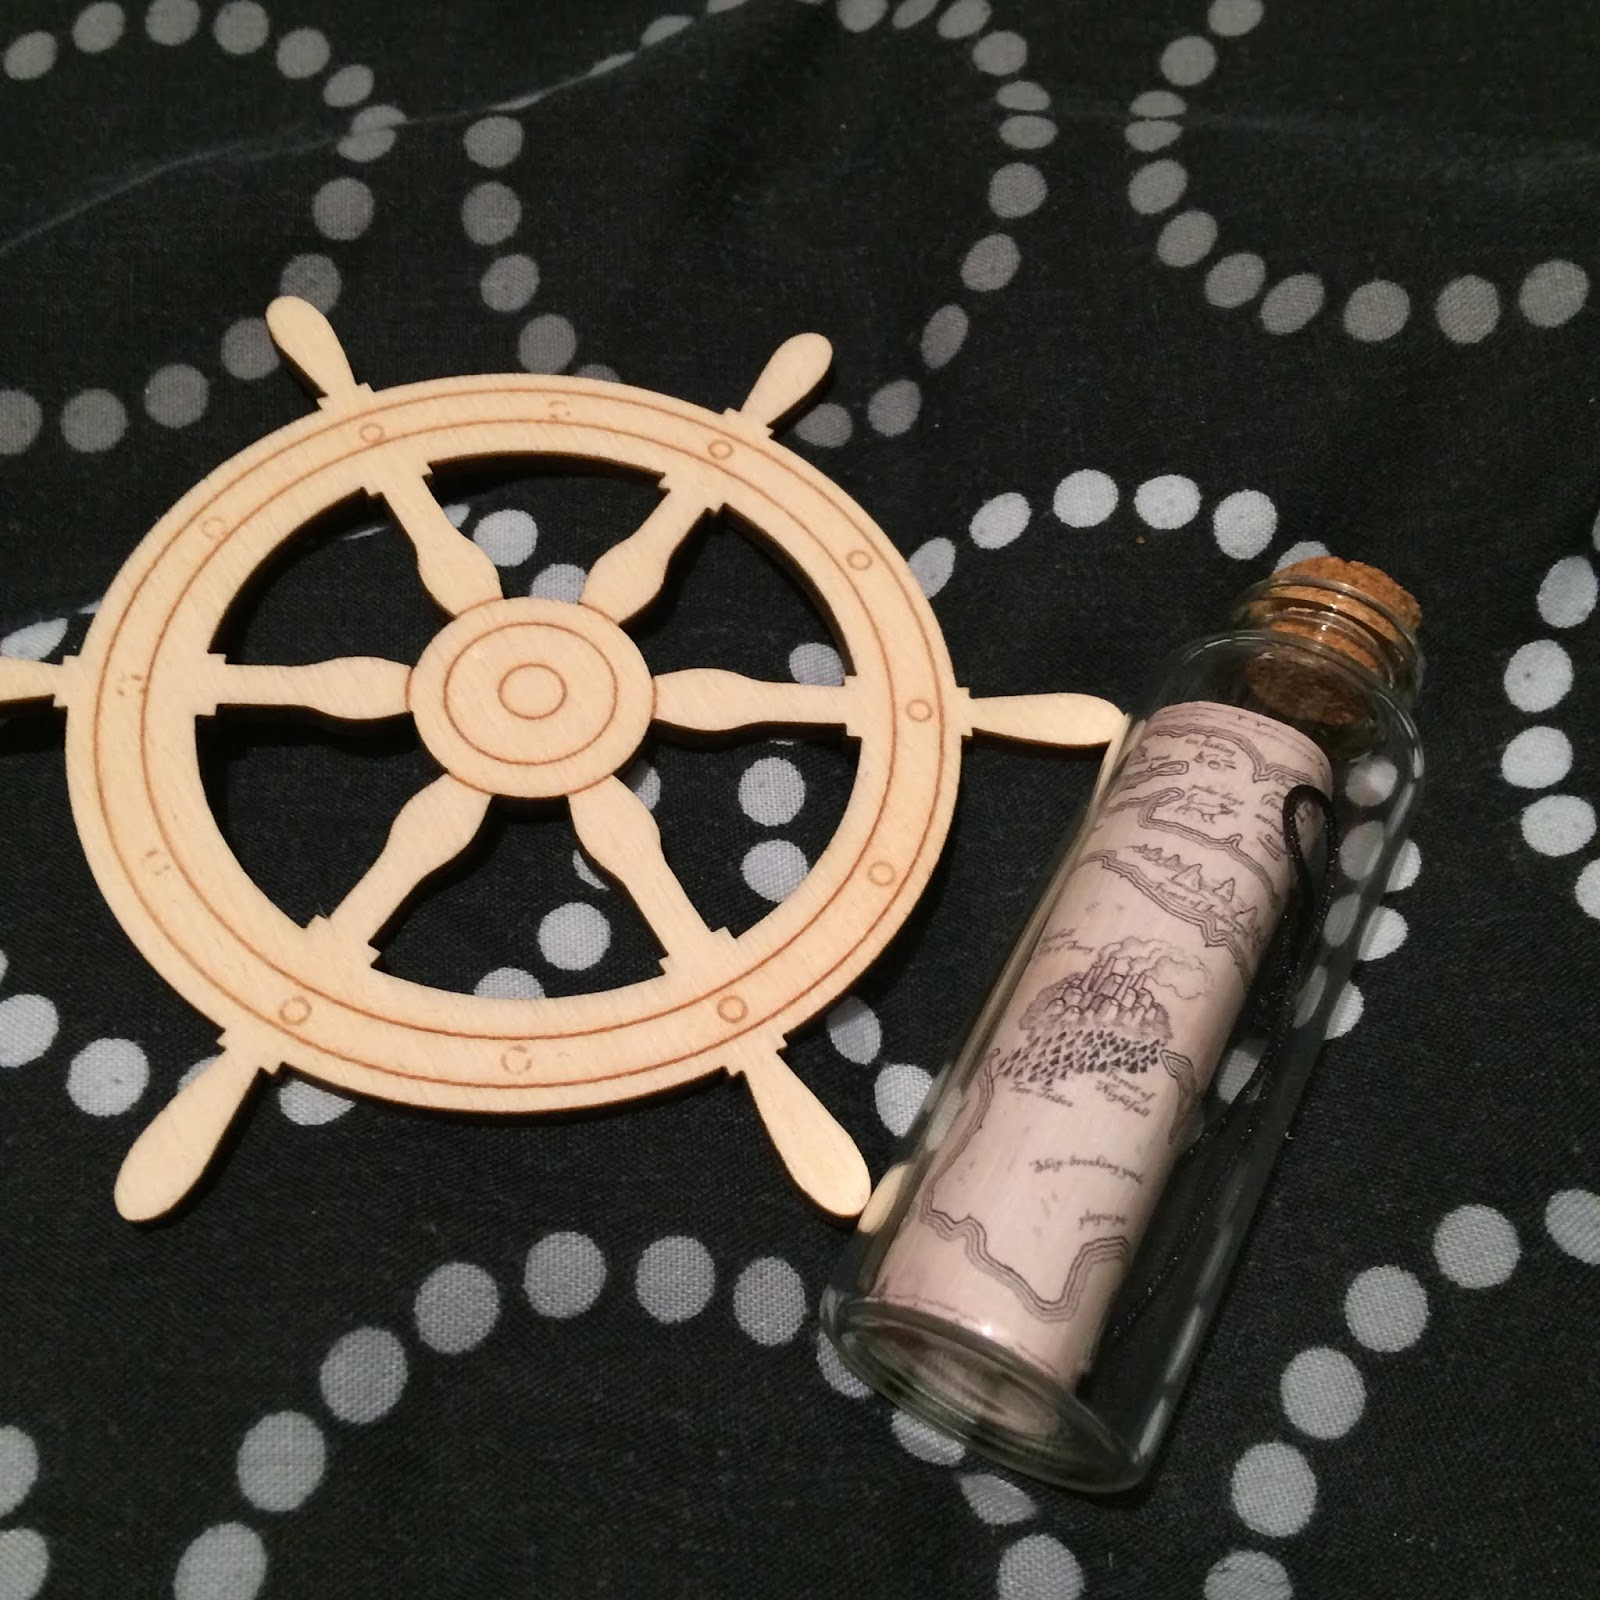 A wooden ship's wheel and a tiny rolled up map inside a corked, glass bottle, for their Songs of the Current